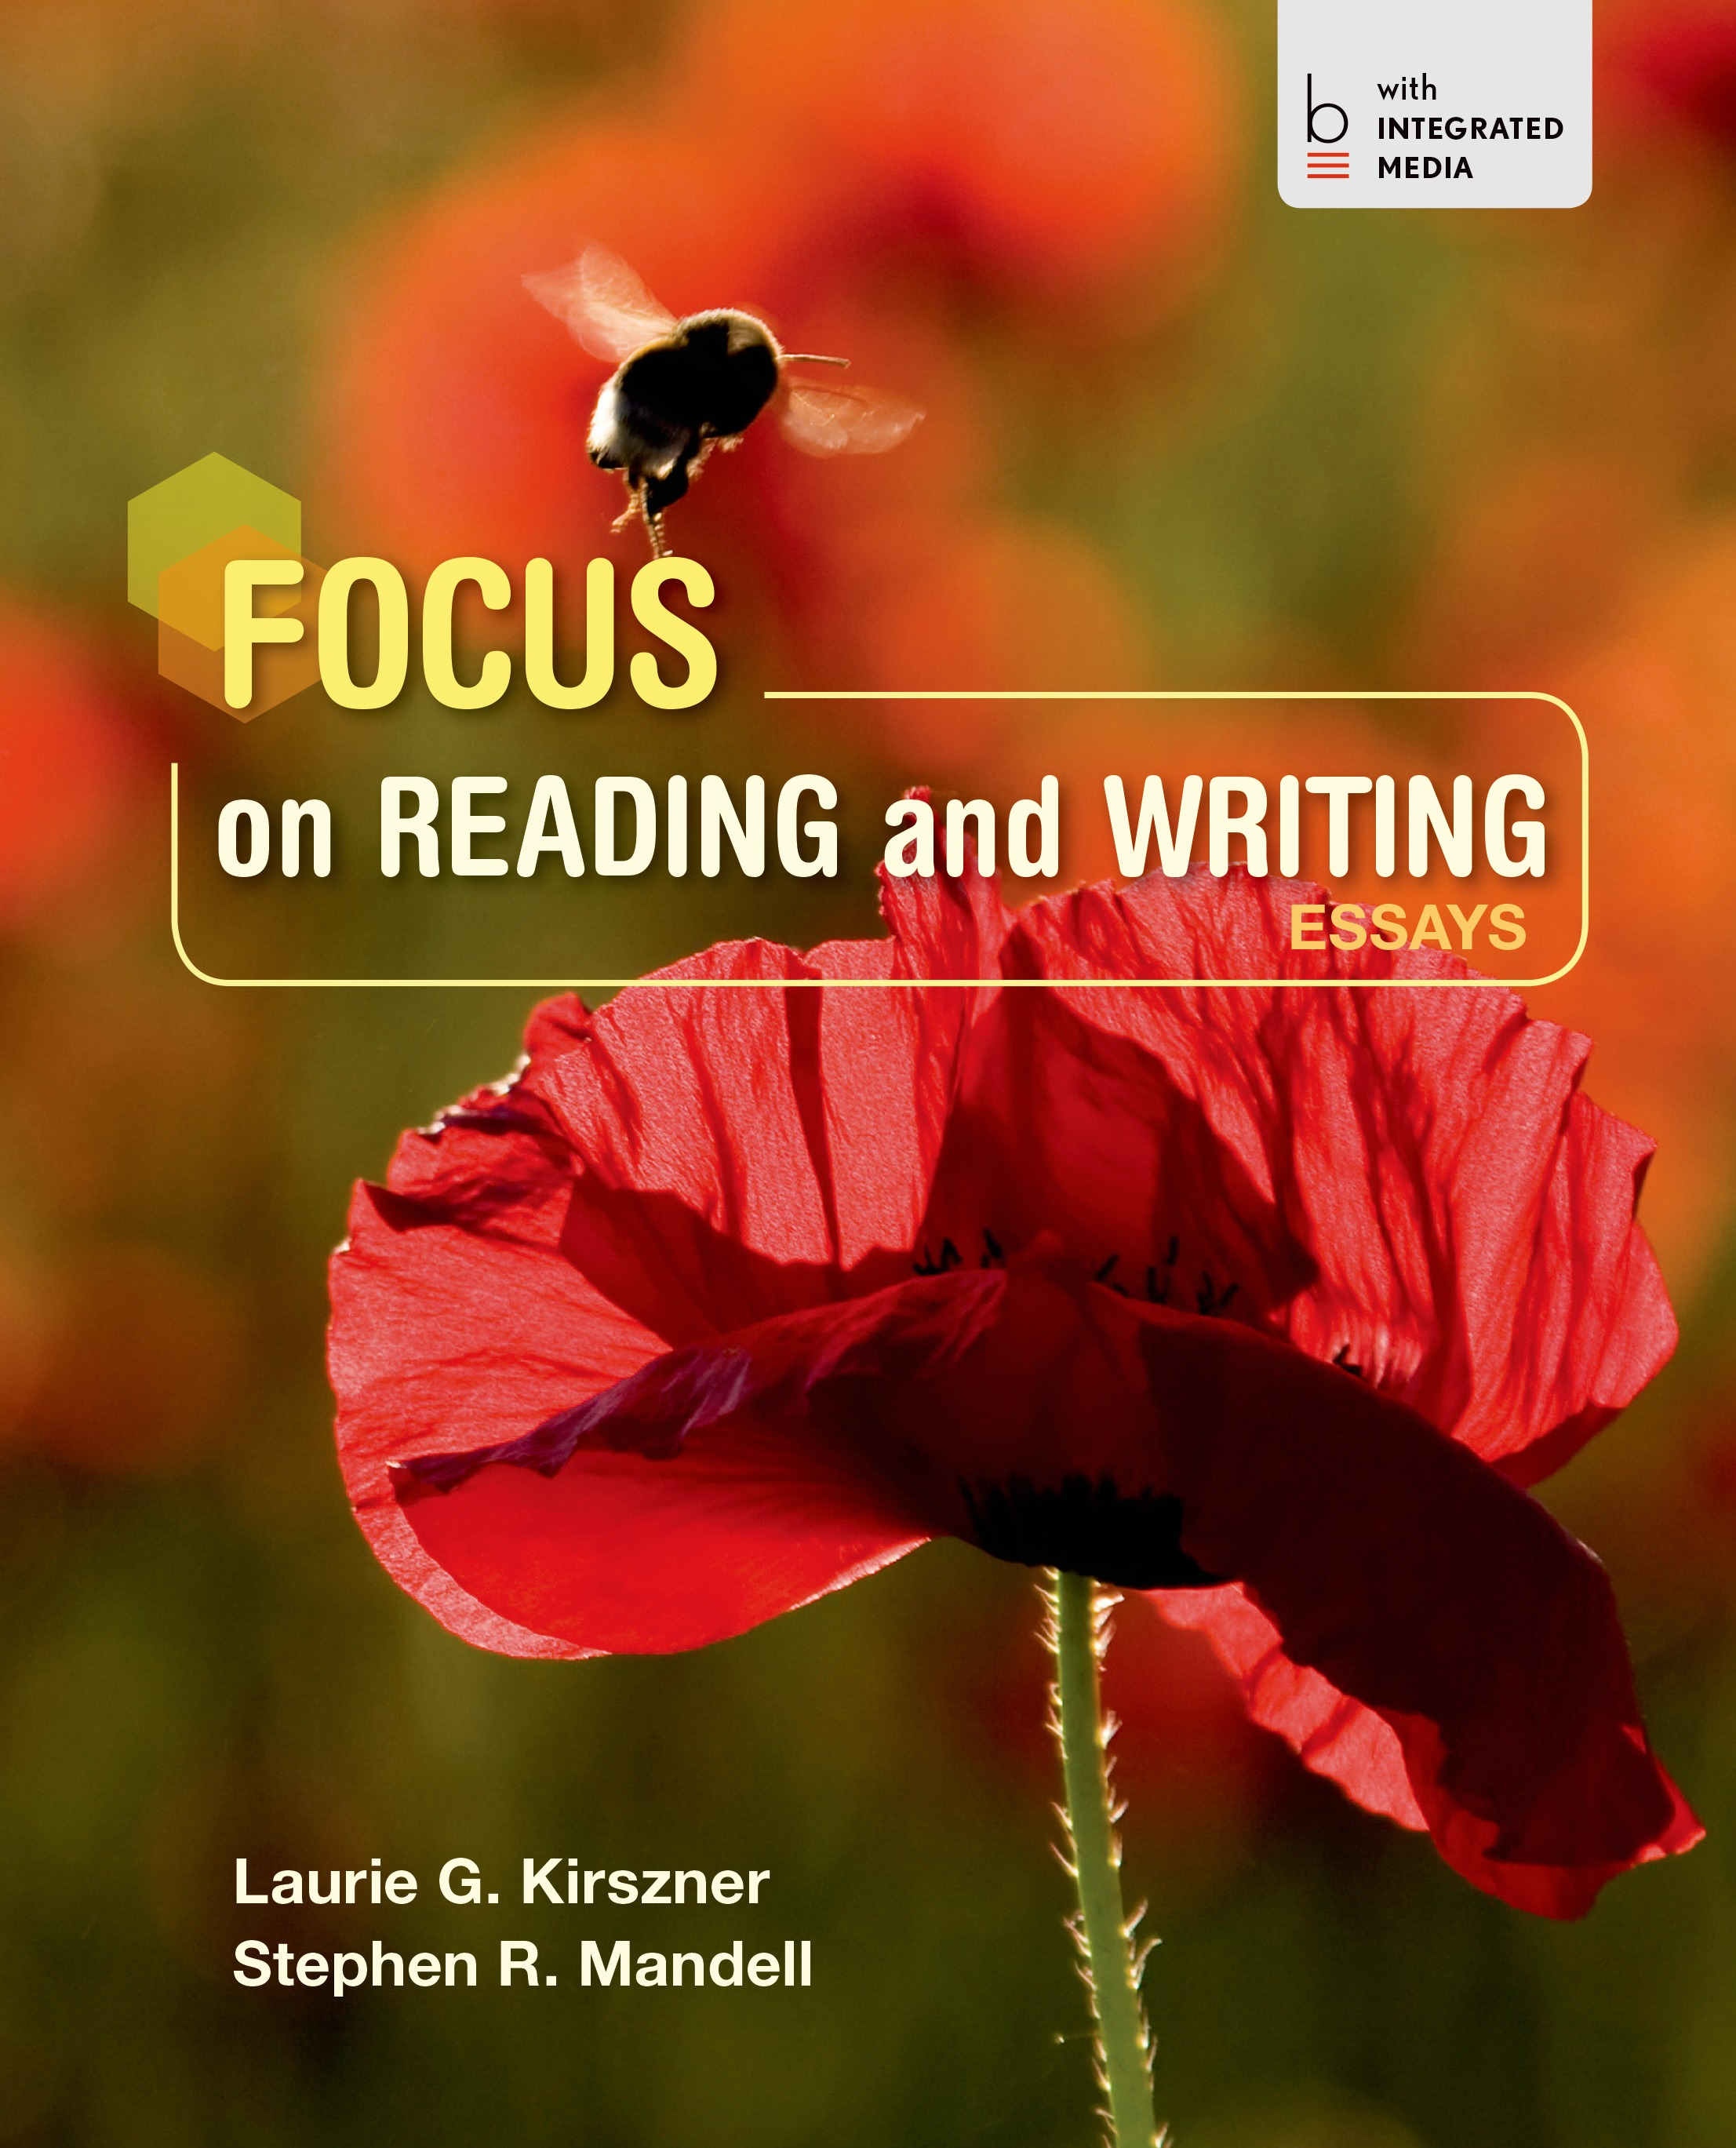 focus writing One of the things writers struggle with most is focus how do you focus on writing without getting distracted the secret: batch your time and choose one.